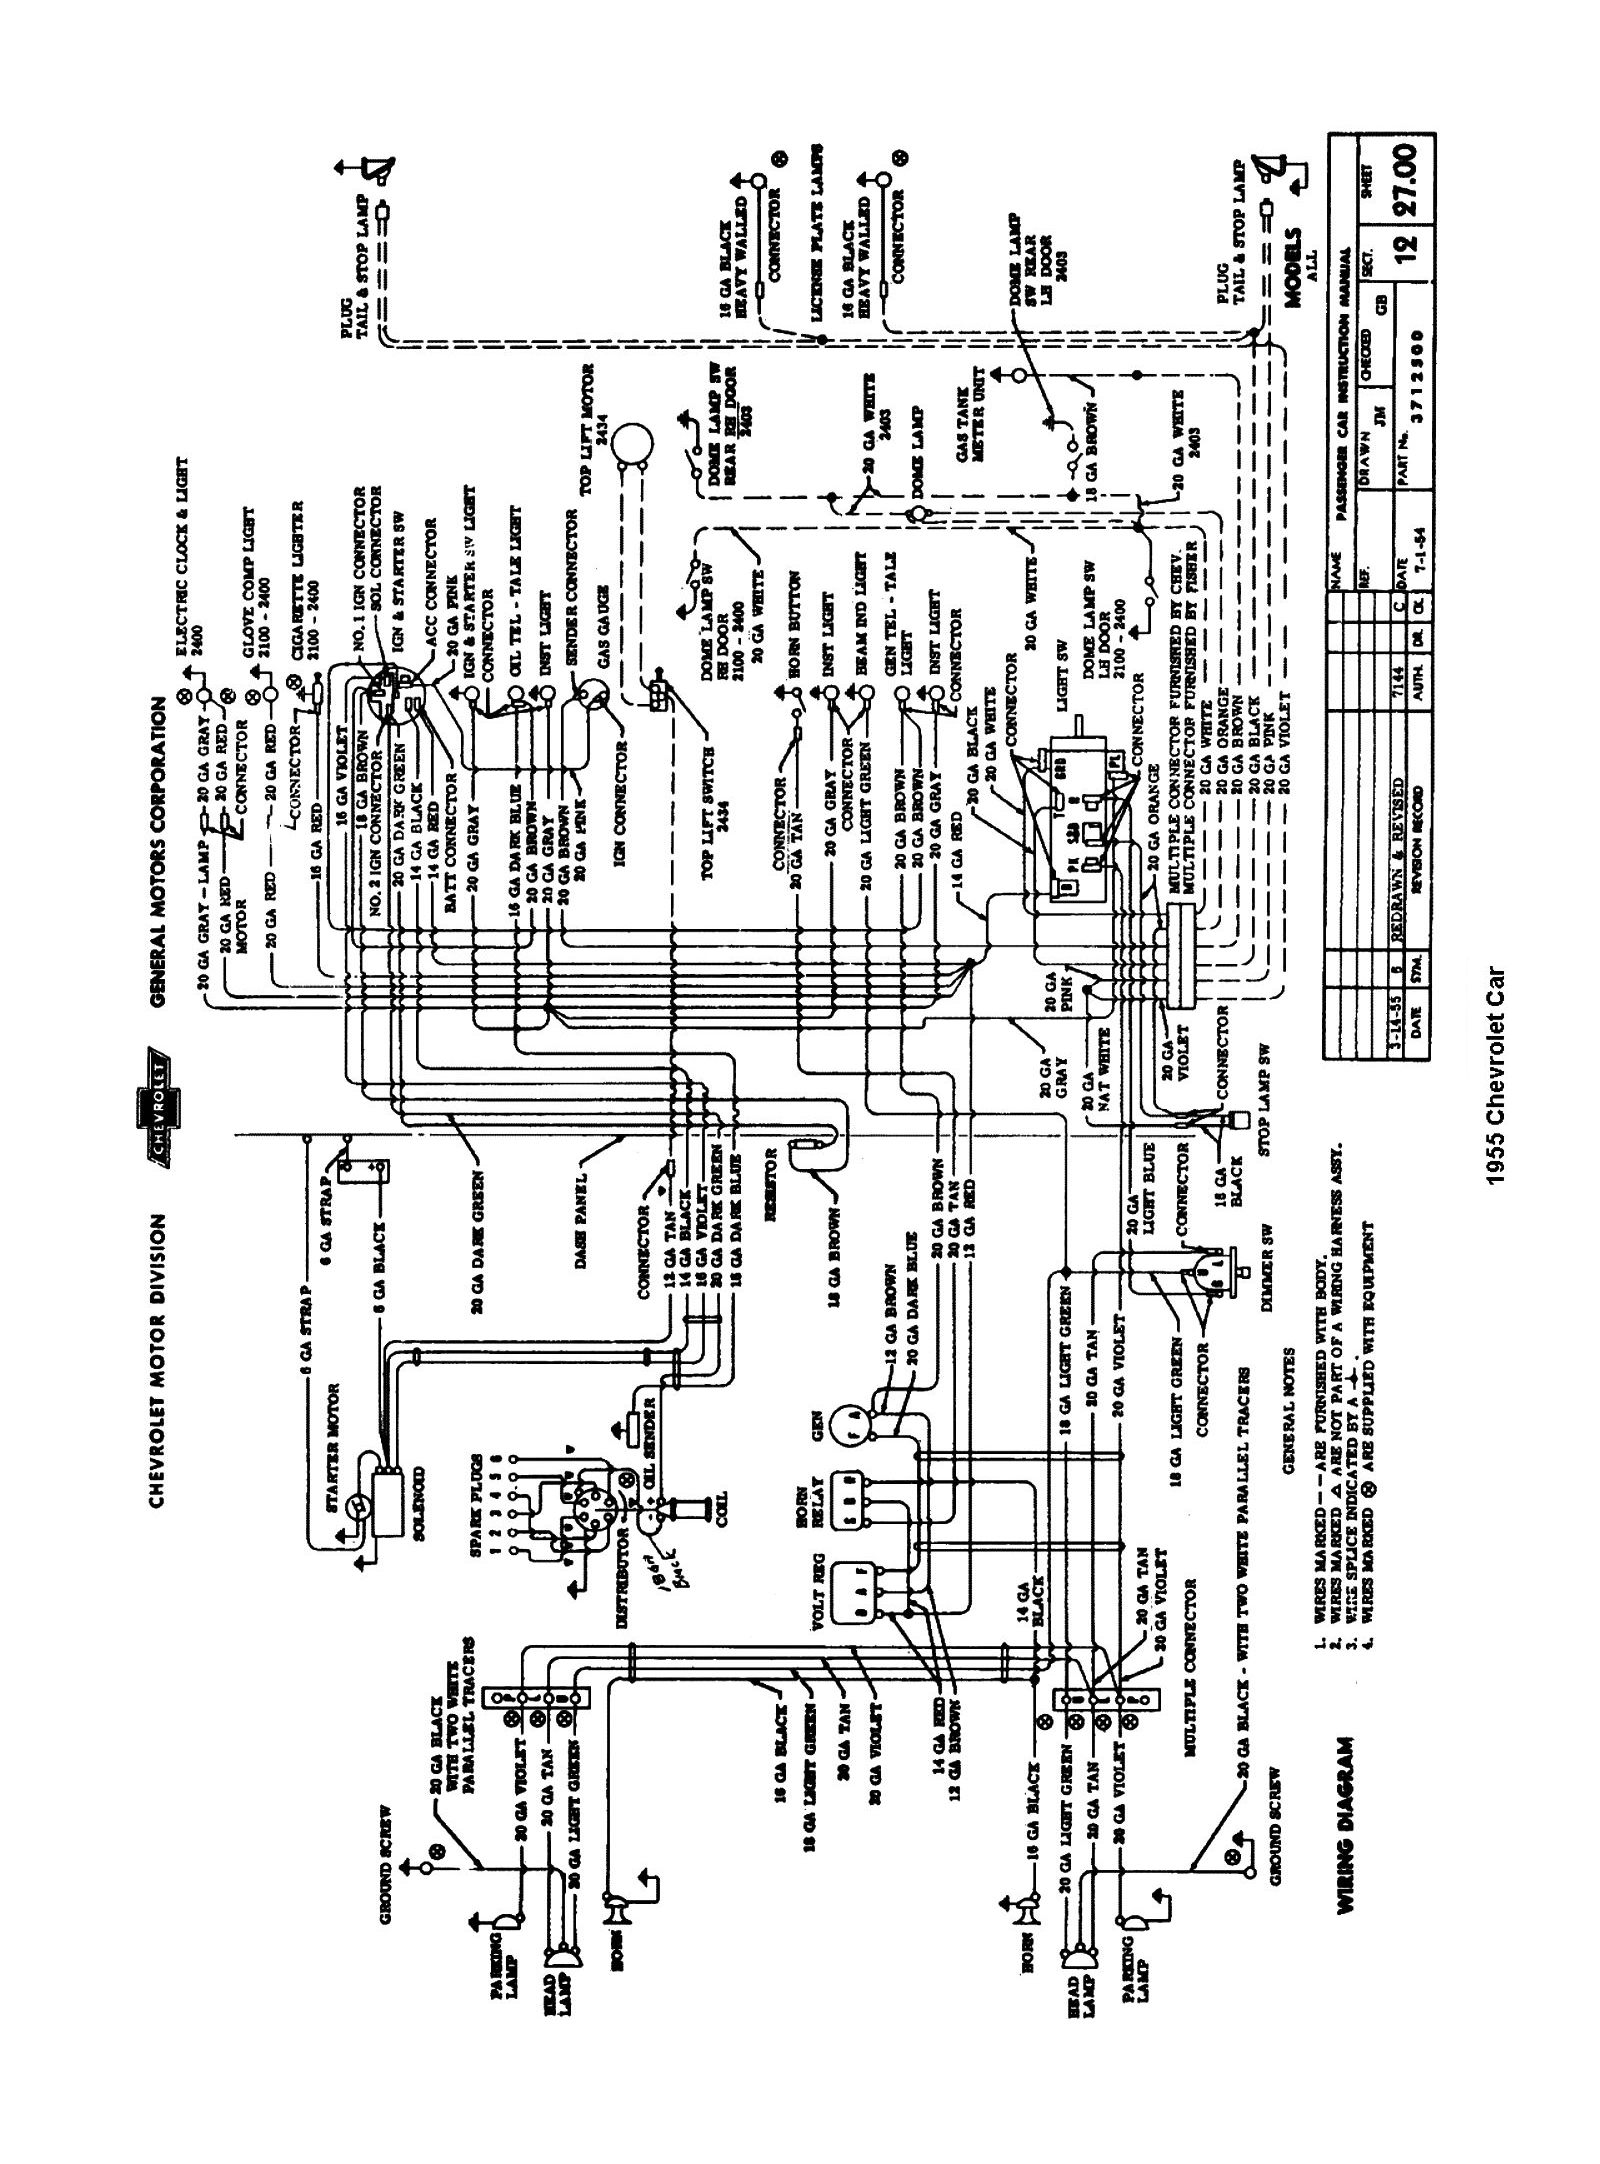 55car1 chevy wiring diagrams GM Factory Wiring Diagram at reclaimingppi.co